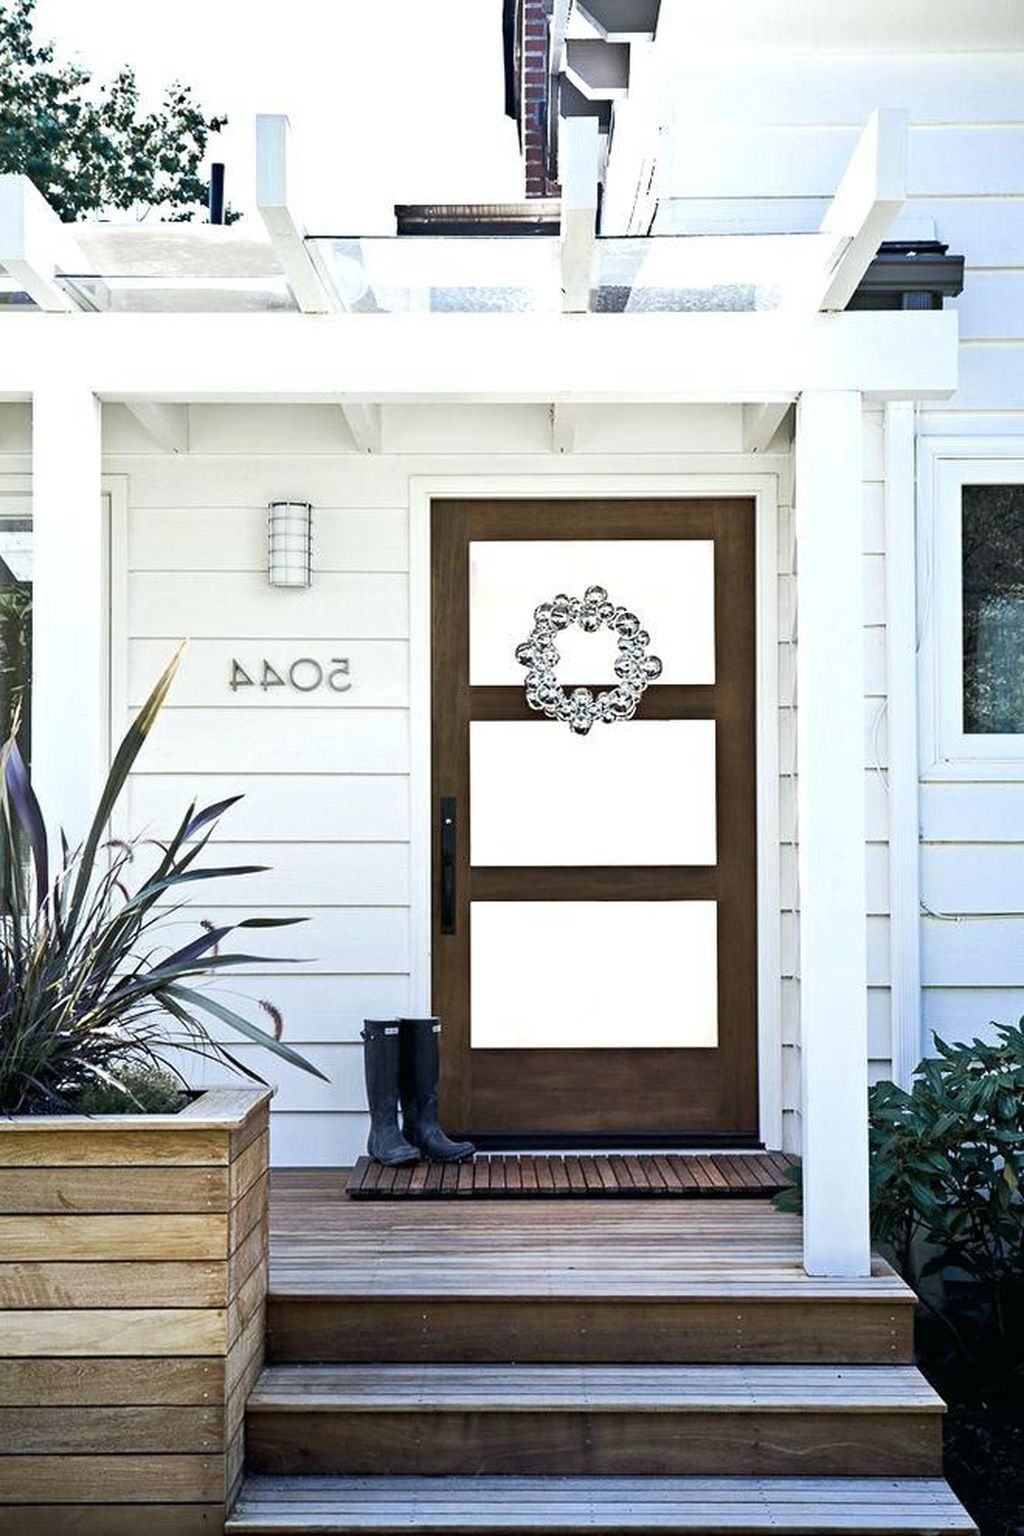 Nyla Free Designs Inc Project Reveal Elbow Park Modern Front Entry Home Entrance Decor Contemporary Home Decor Entryway Inspiration